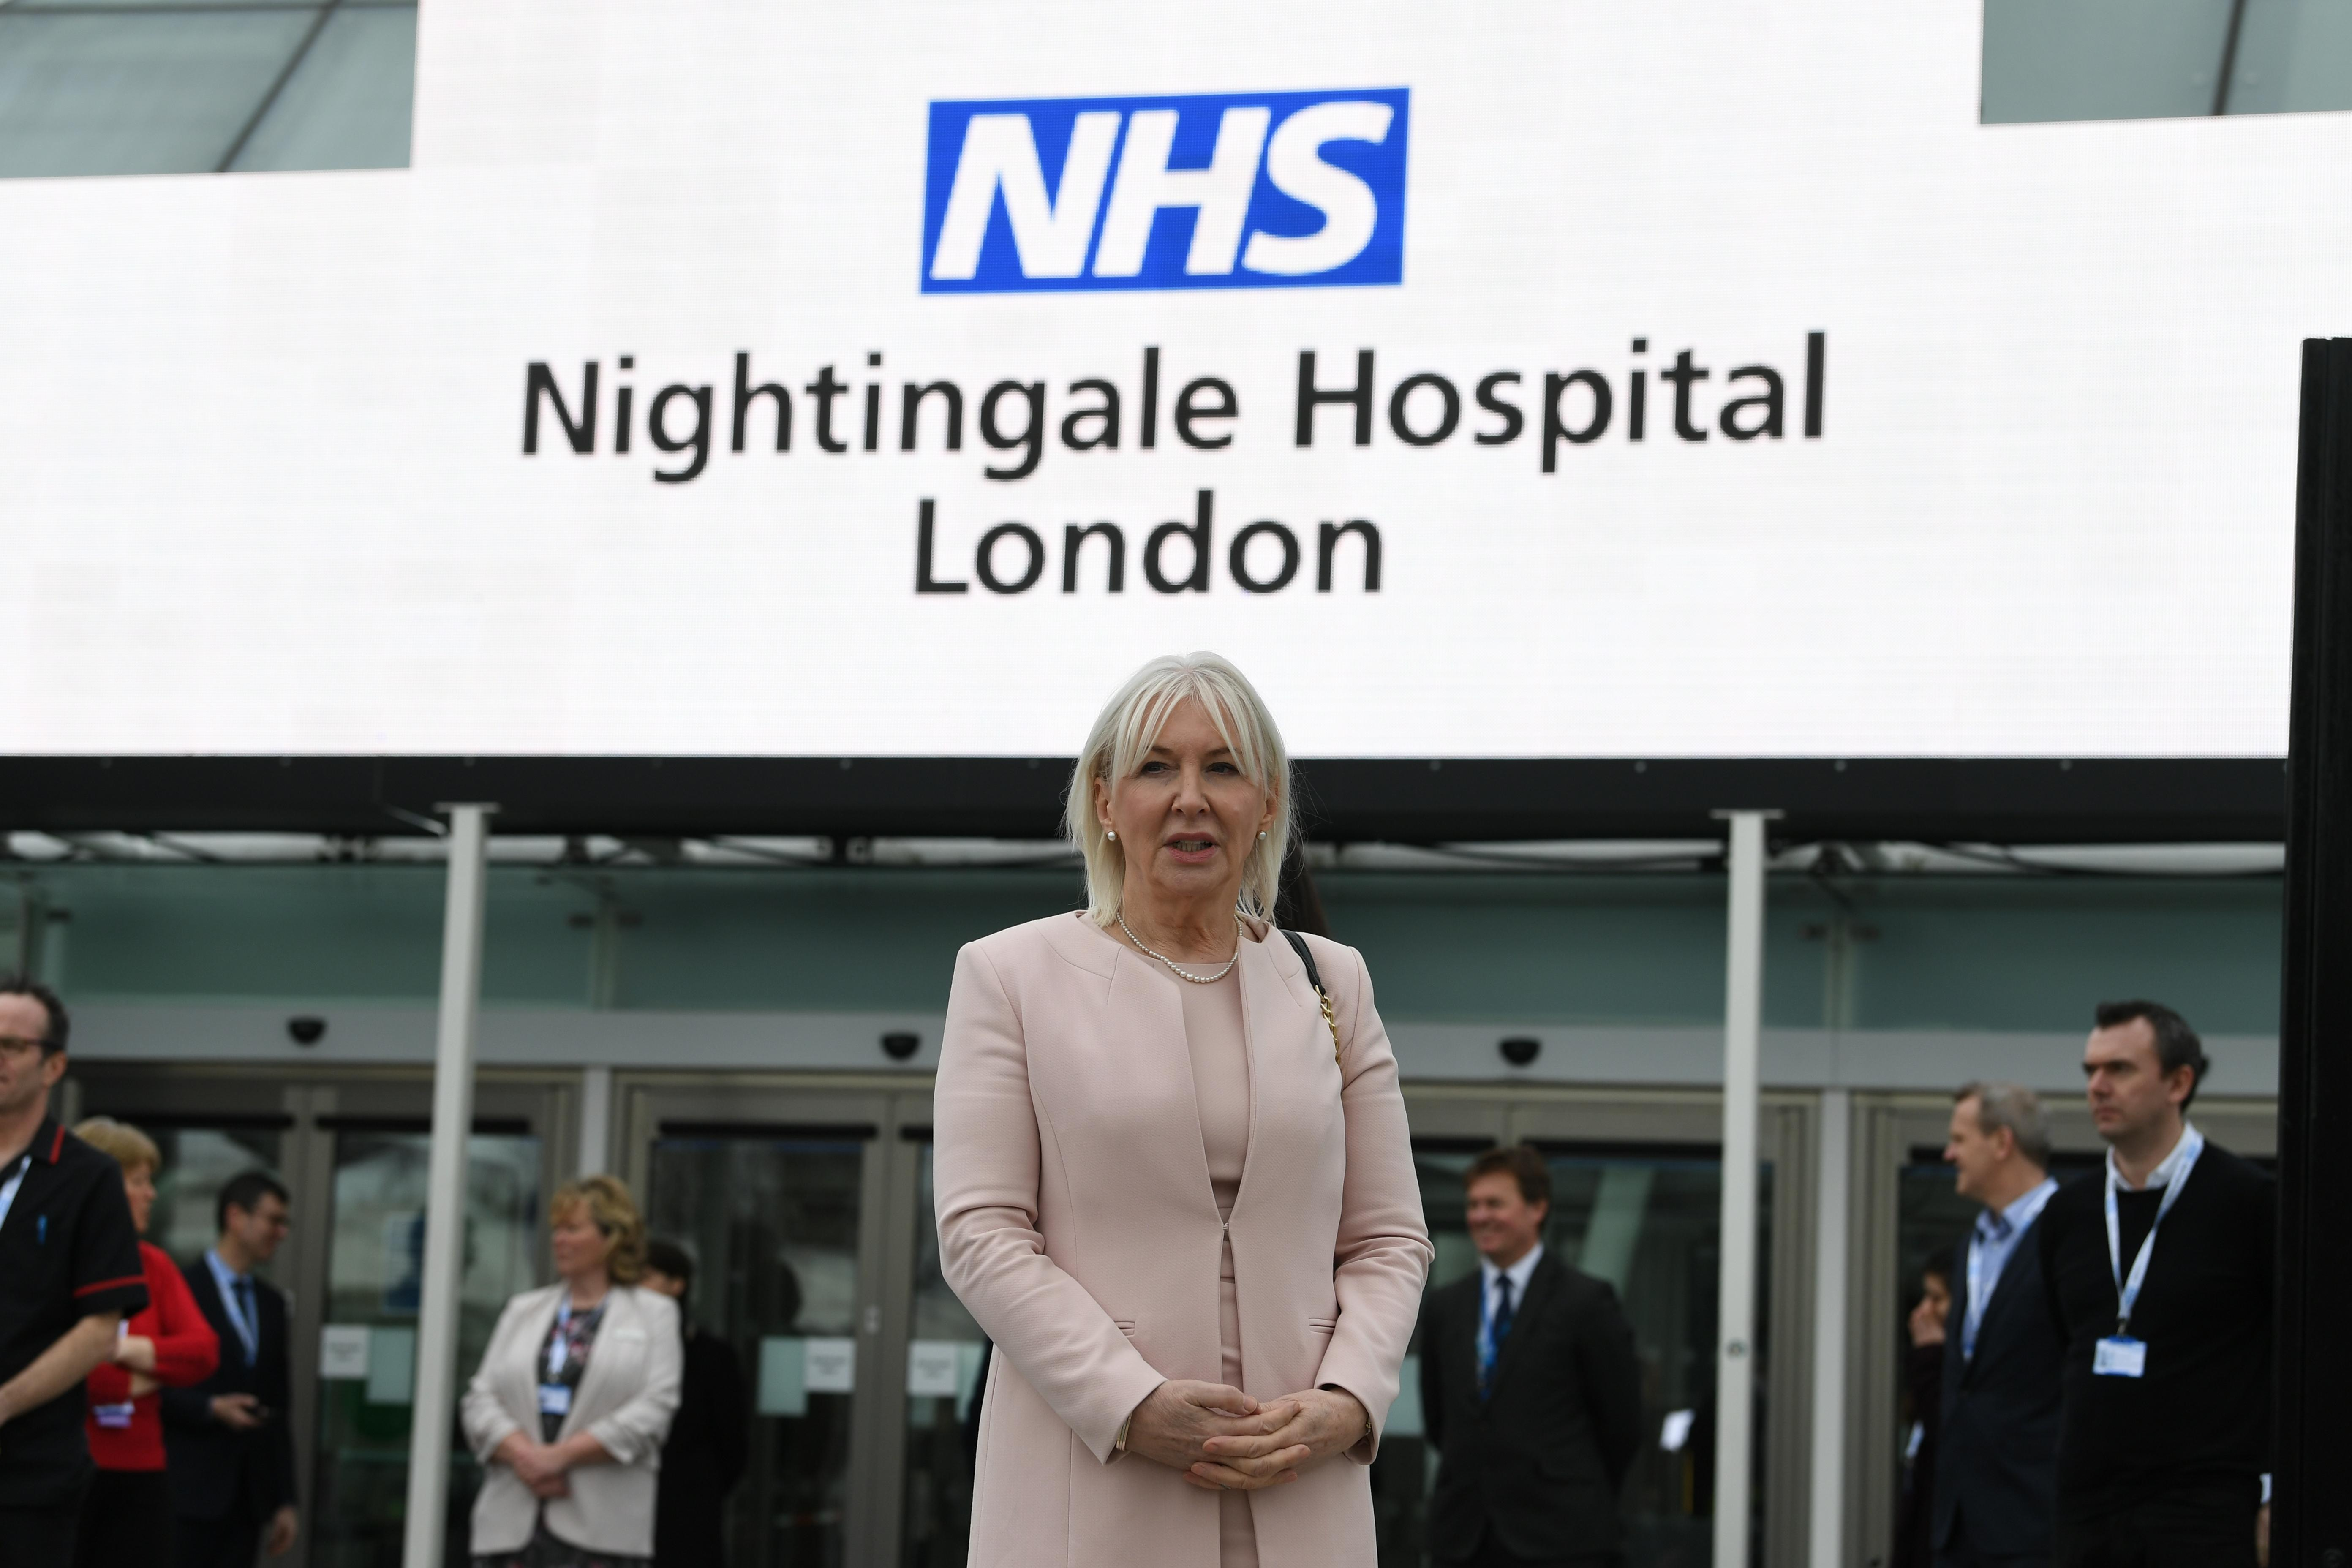 Health minister Nadine Dorries at the opening of the NHS Nightingale Hospital at the ExCel centre in London, a temporary hospital with 4000 beds which has been set up for the treatment of Covid-19 patients.